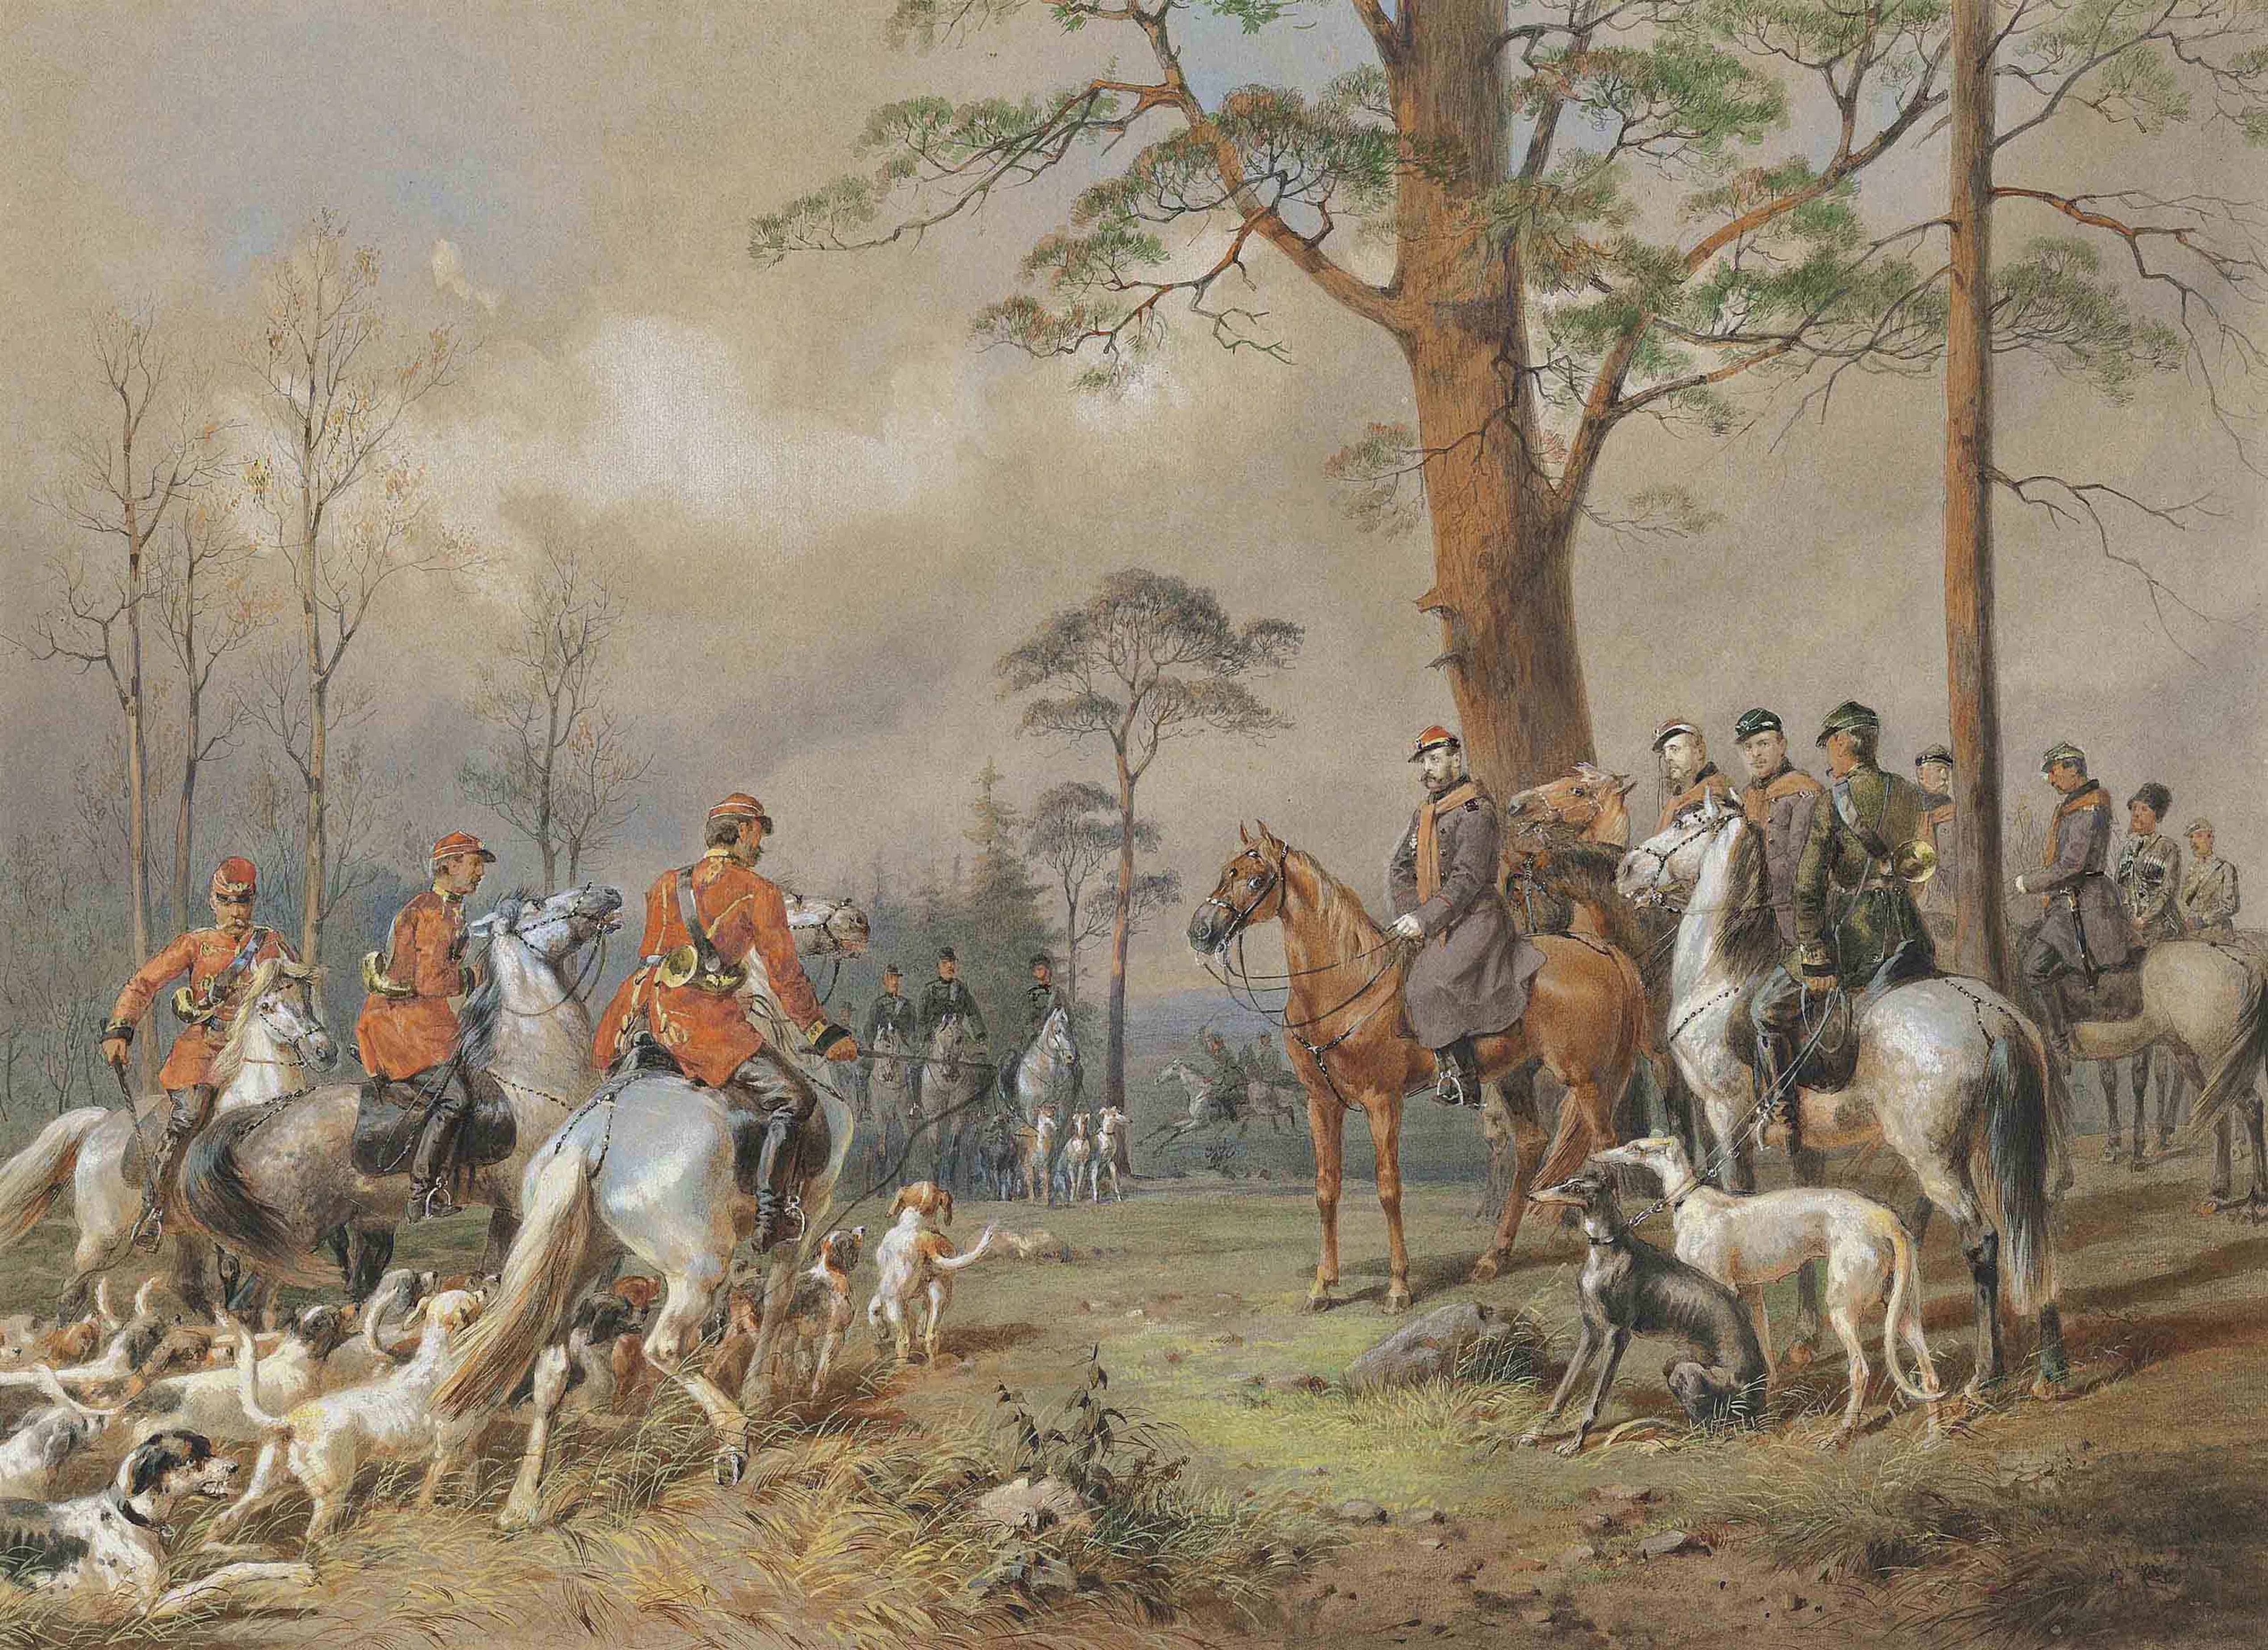 A depiction of an English hunting party.